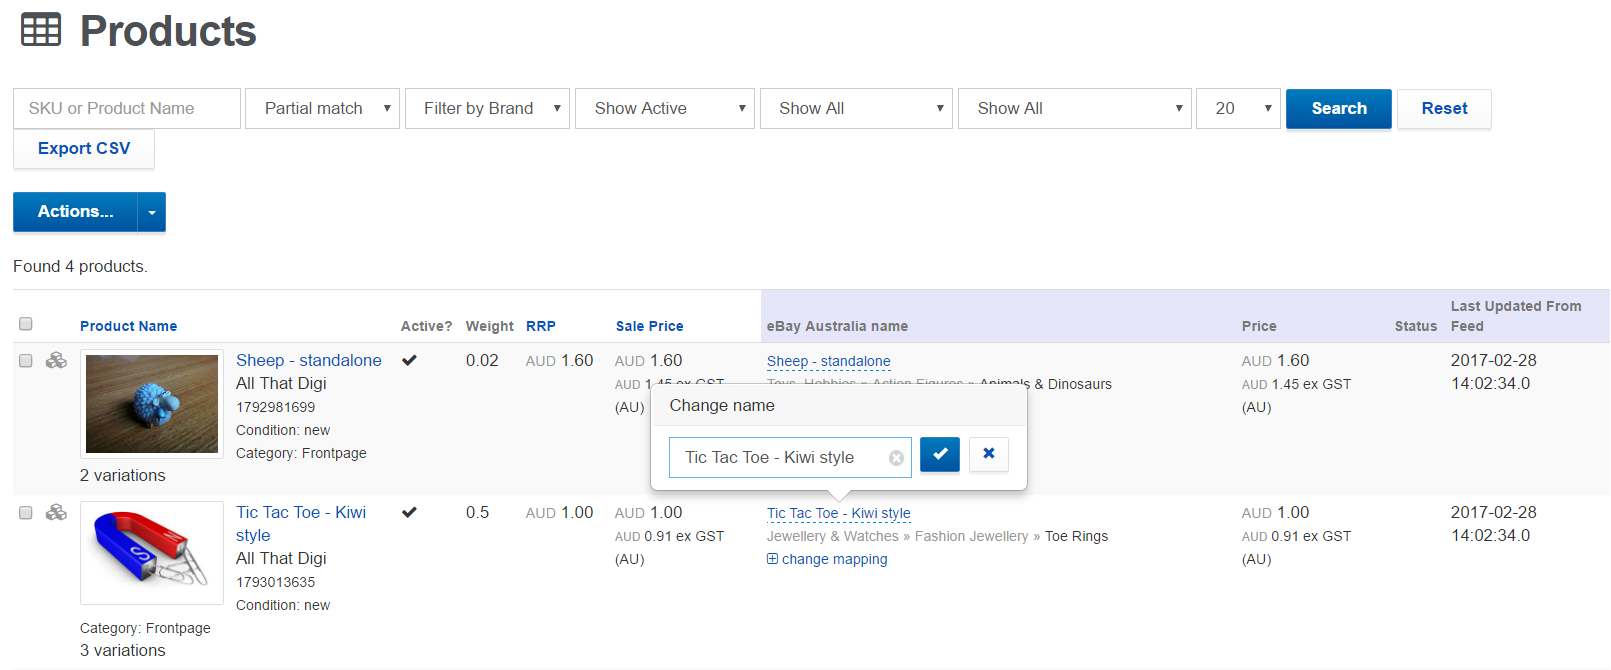 How Do I Change The Product Titles In Ebay Link To Optimise My Listings For Ebay S Search Algorithm Ebay Link Support